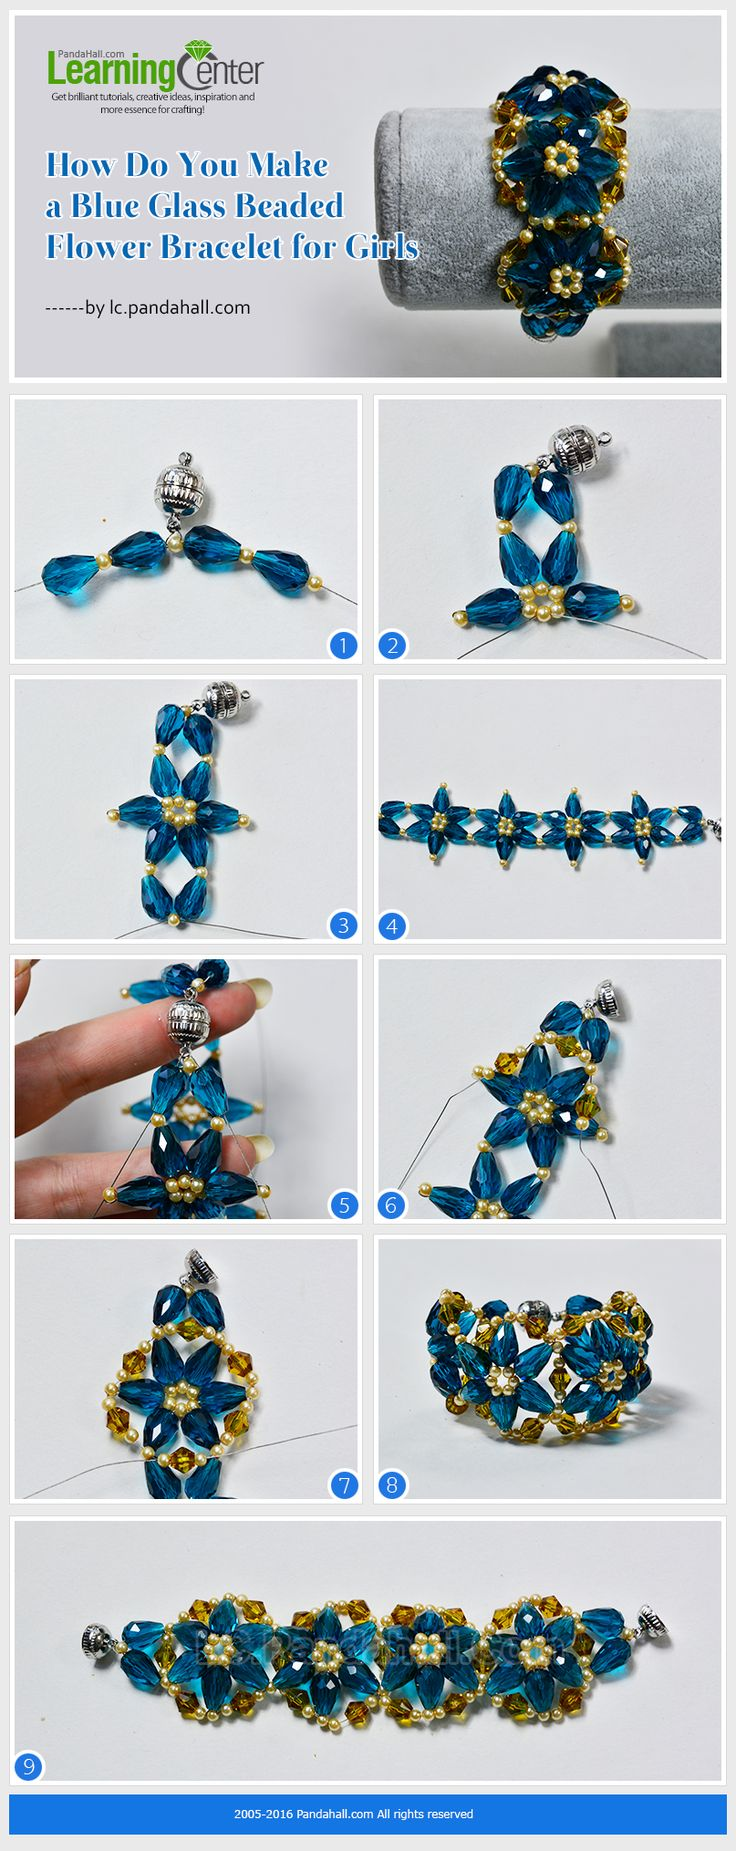 How Do You Make a Blue Glass Beaded Flower Bracelet for Girls from LC.Pandahall.com